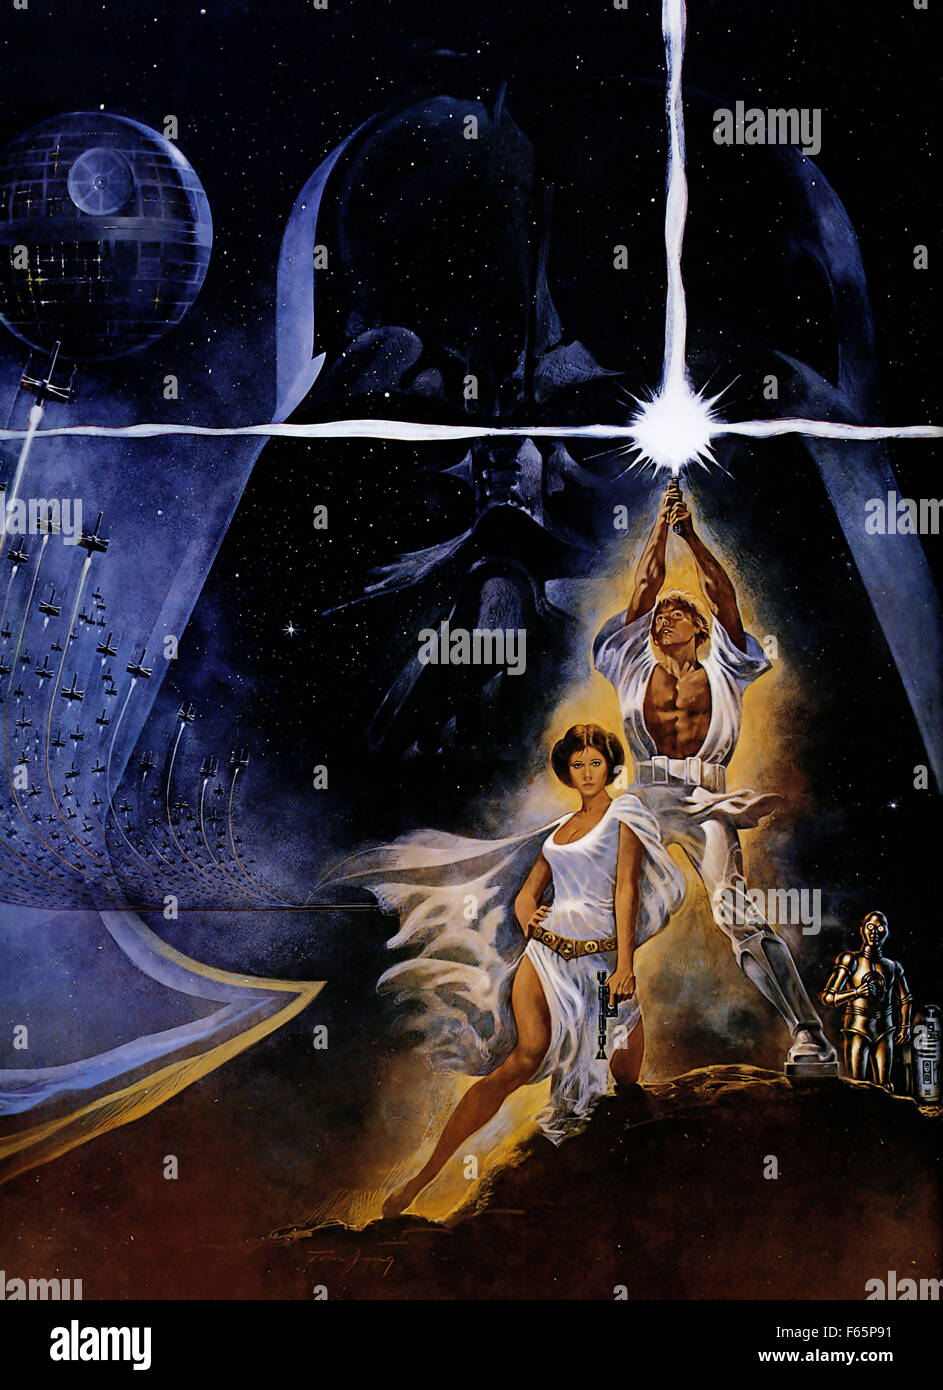 Pulp Fiction Iphone Wallpaper Star Wars Episode Iv A New Hope Year 1977 Usa